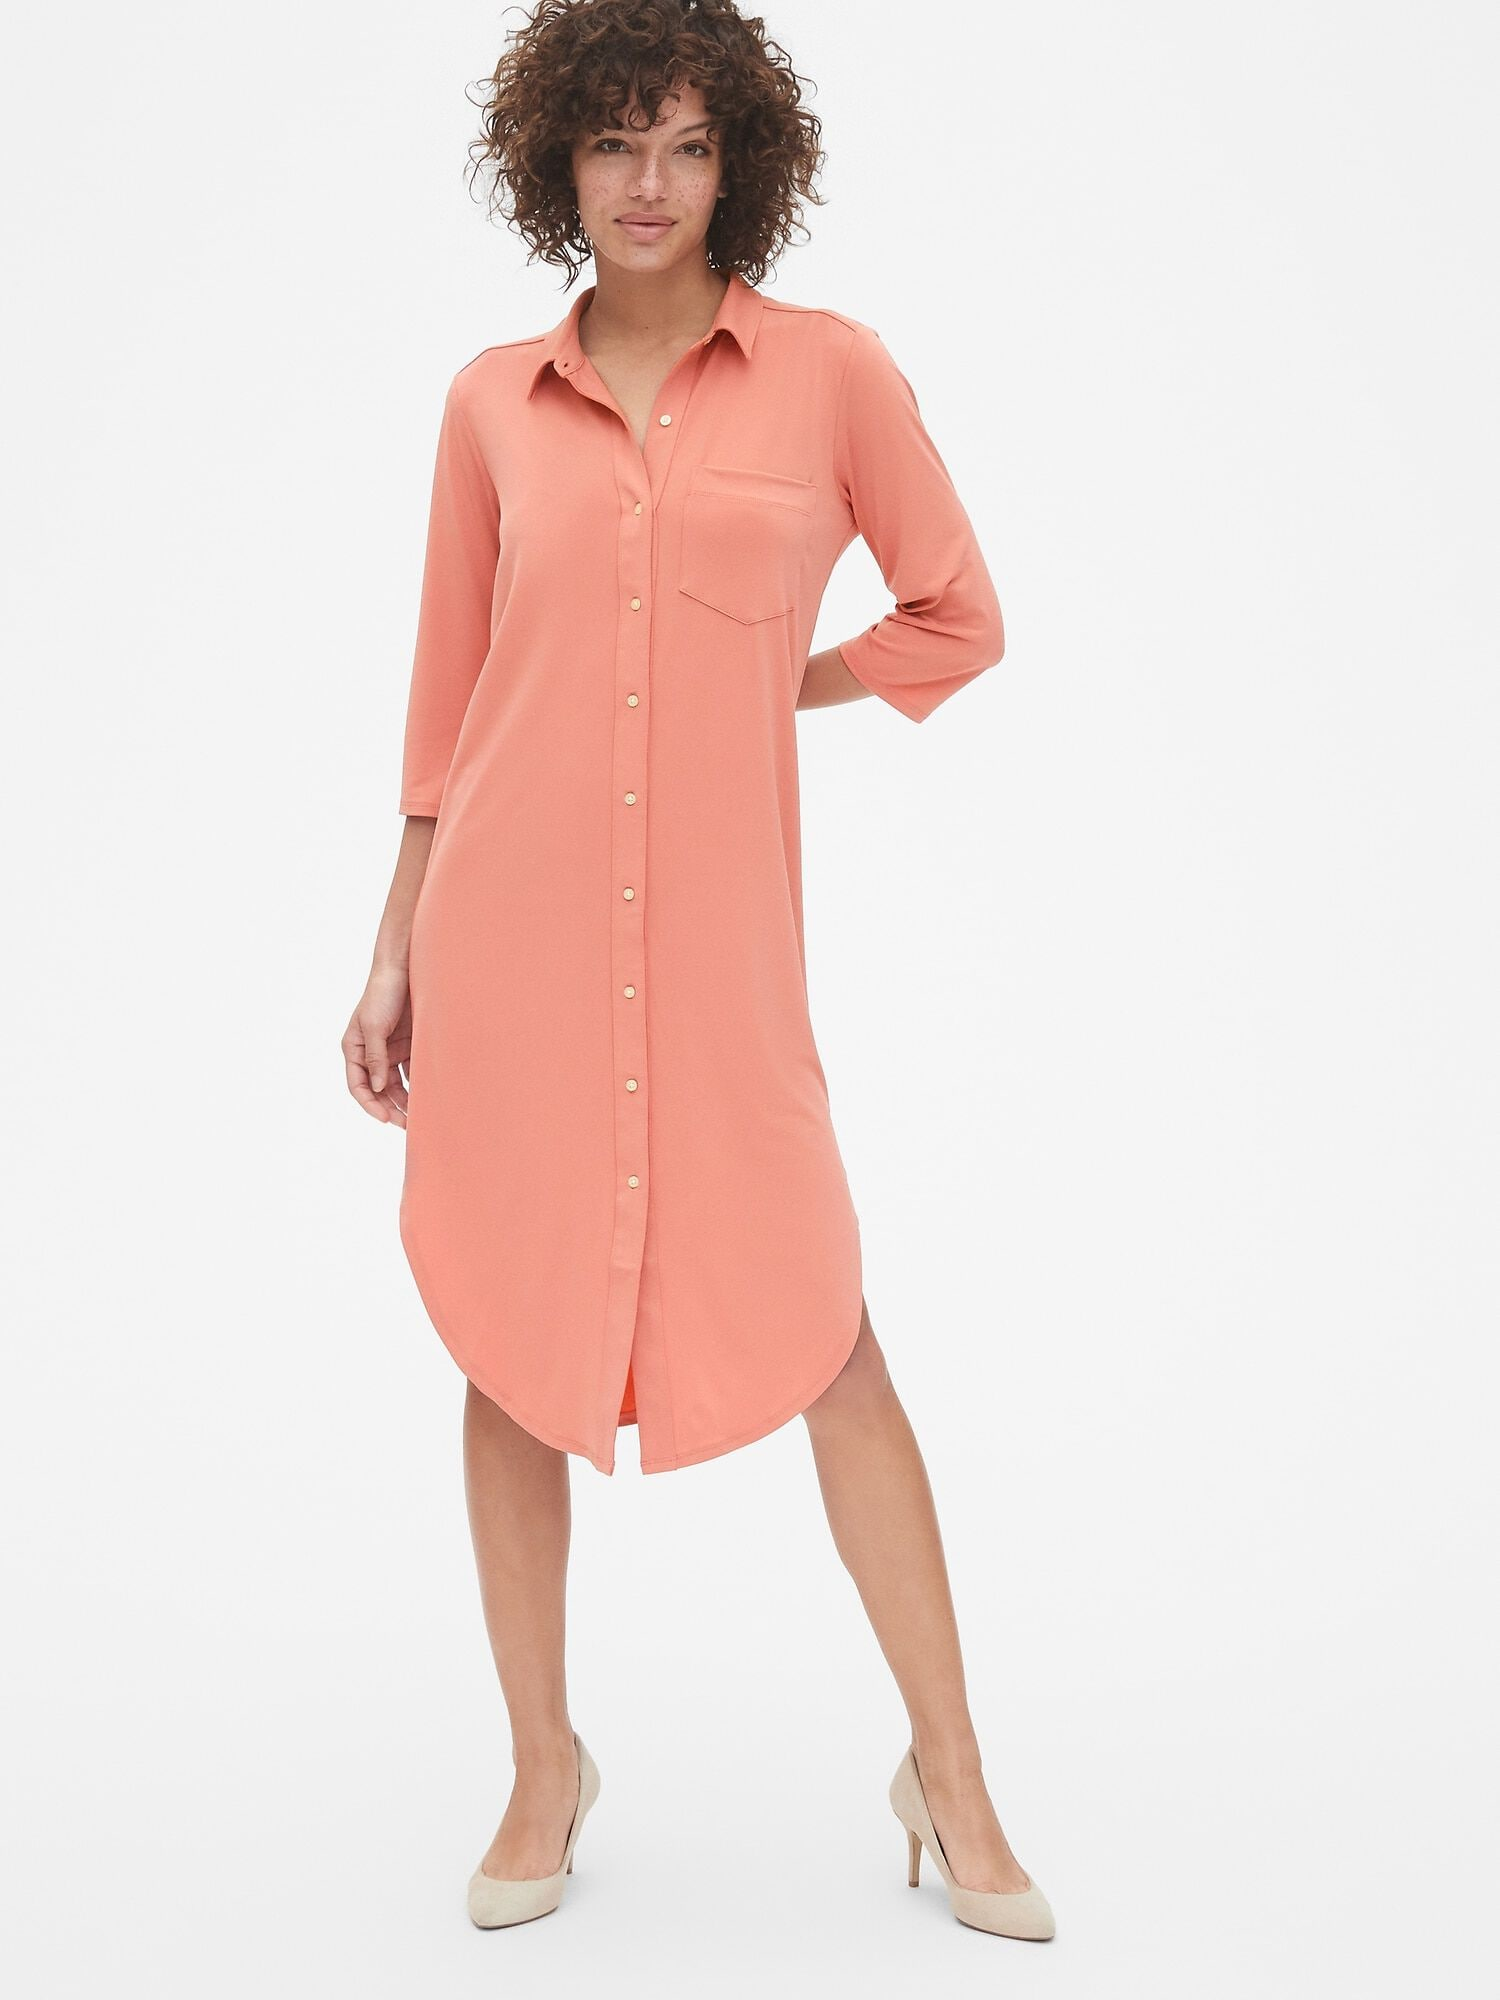 a6c7b1e3bbd5 Peach Shirt Dress Uk – DACC